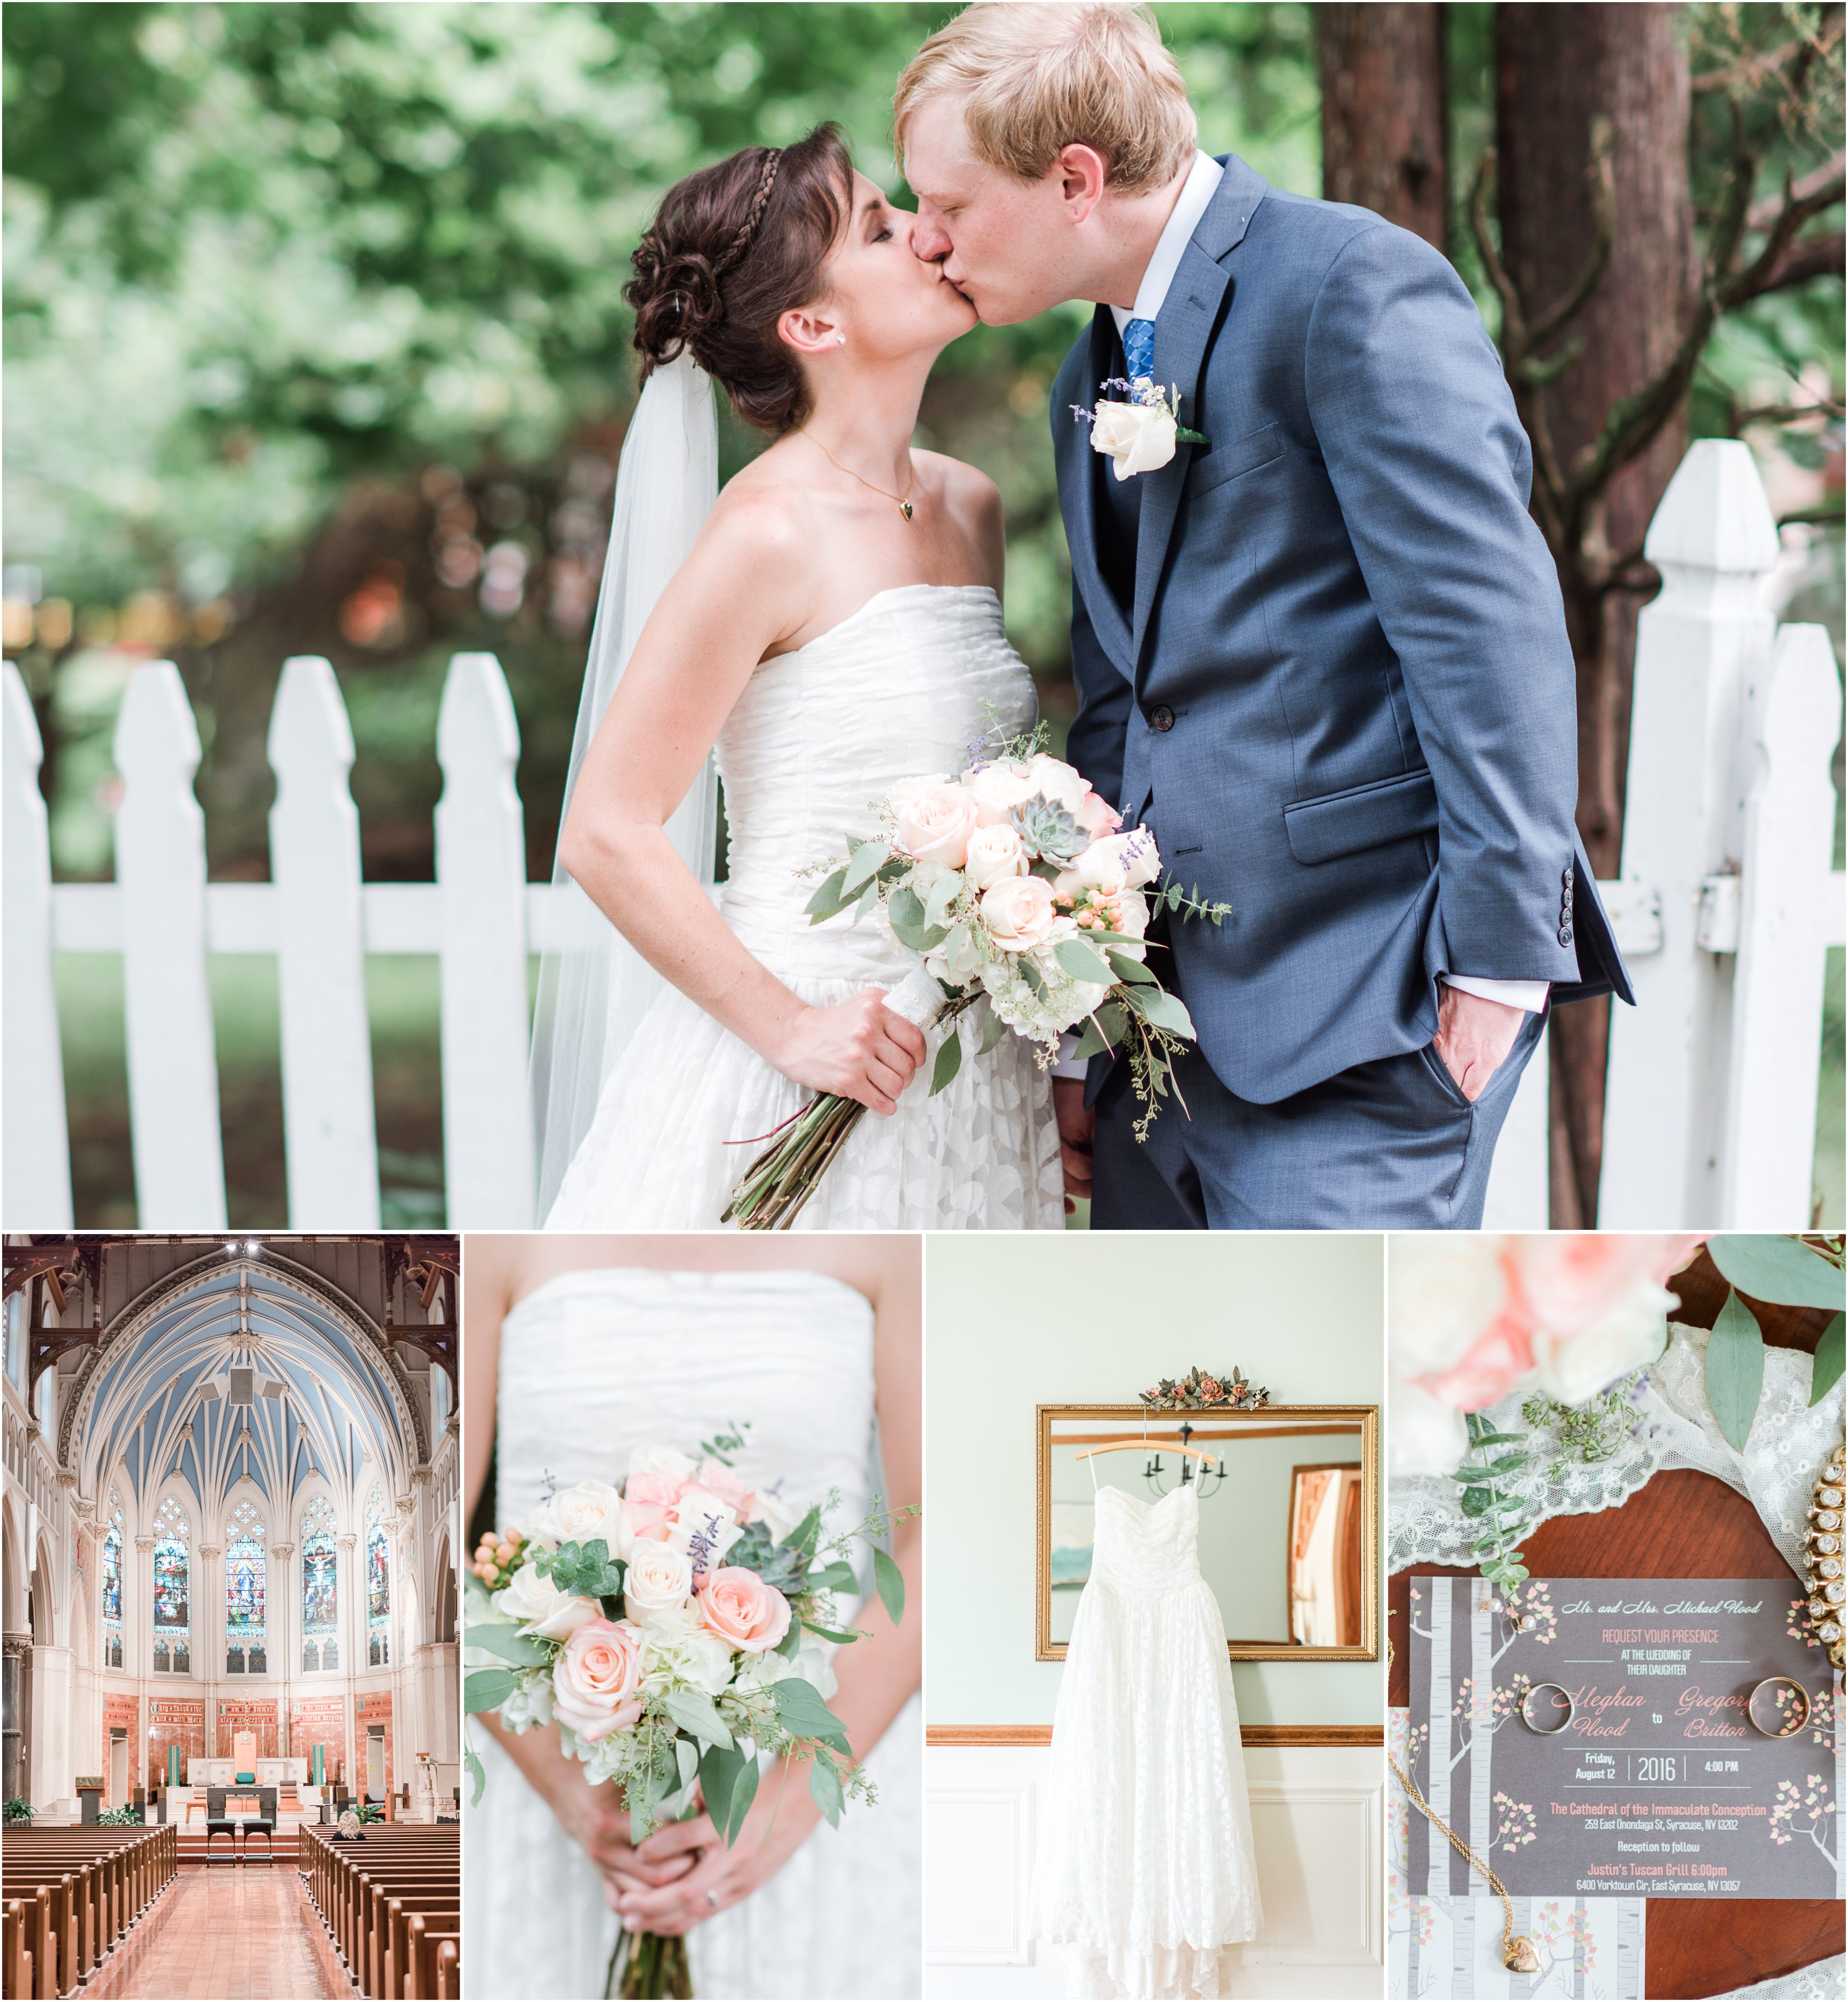 A Syracuse, New York Wedding at the Cathedral of the Immaculate Conception and Justin's Tuscan Grill